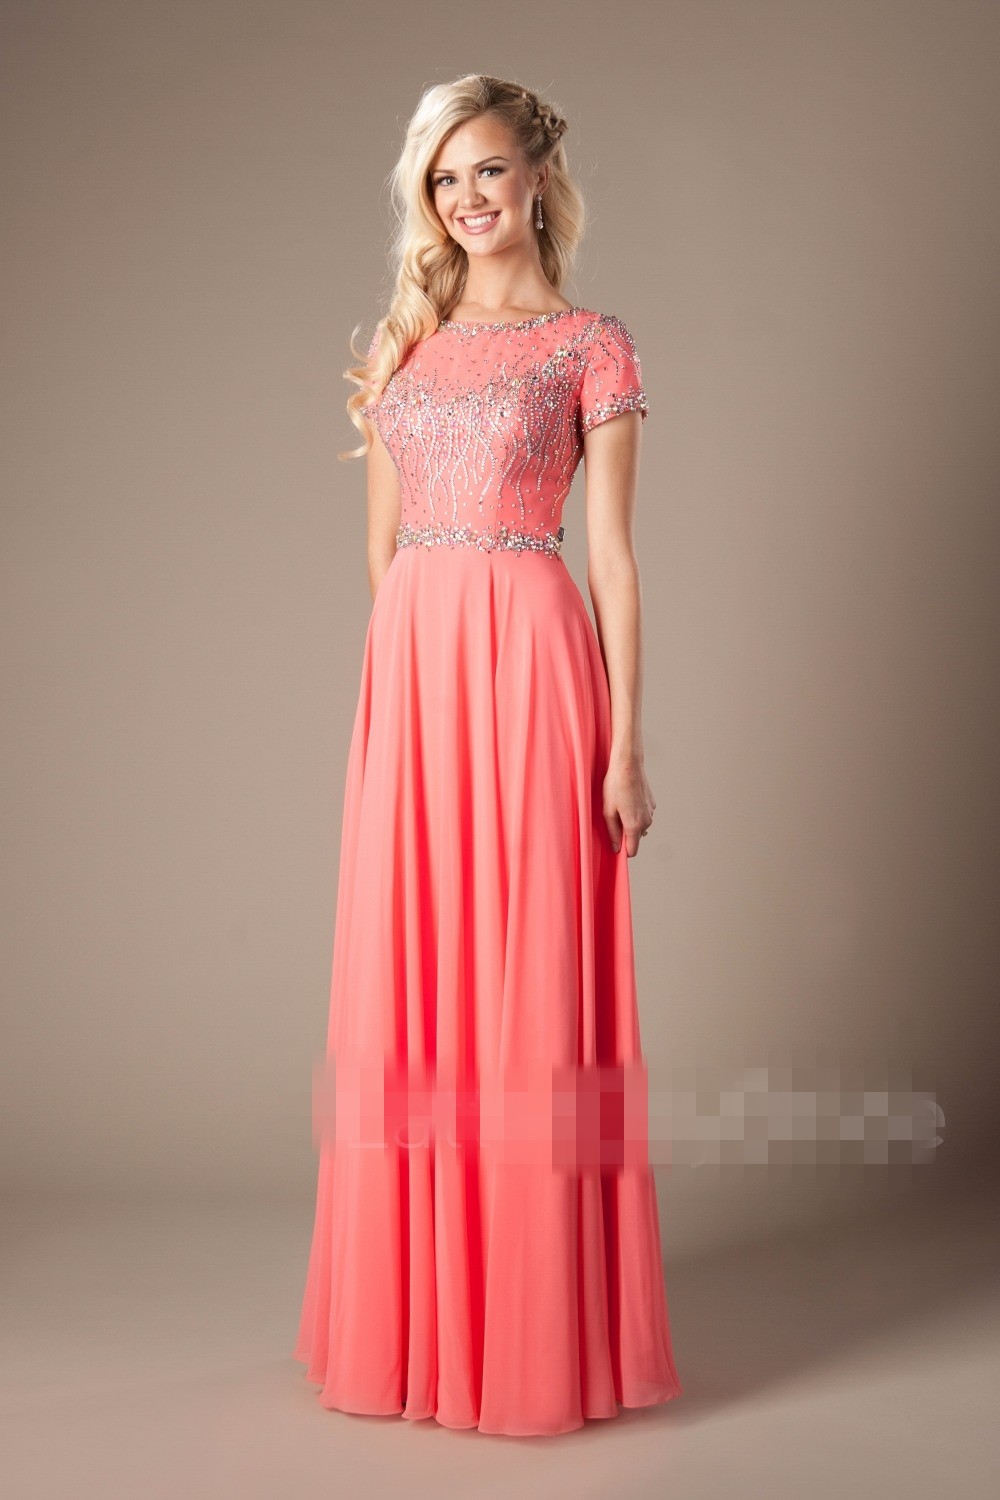 2019 Coral Blue Beaded Chiffon Modest Prom Dresses With Short Sleeves Jewel Neck A-line Teens Formal Evening Wear Modest Cheap